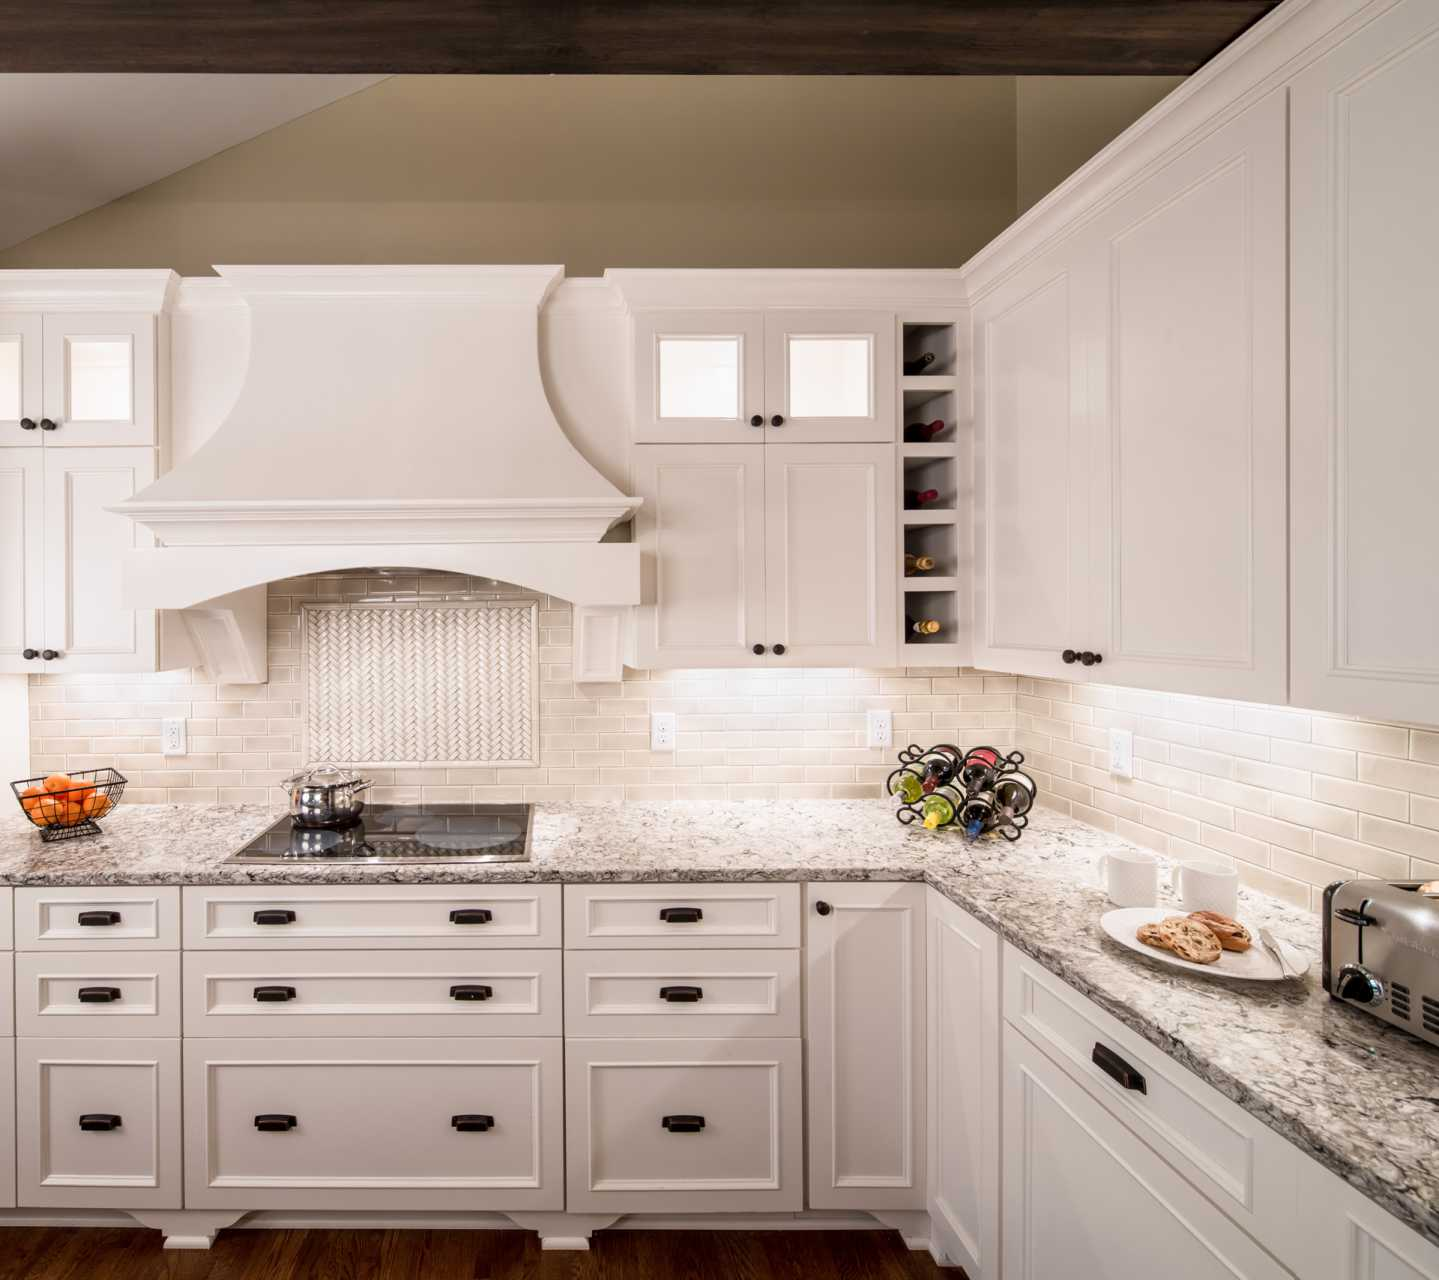 Kitchen Backsplash Ideas With White Cabinets Cambria Bellingham White Cabinets Backsplash Ideas